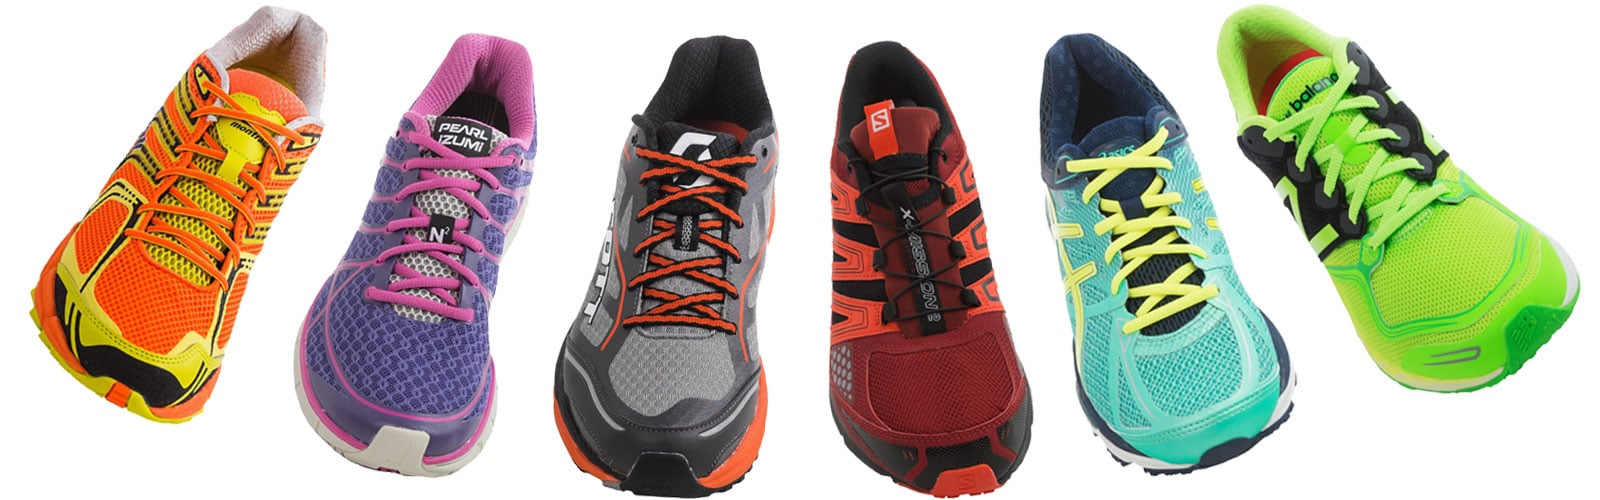 Best Running Shoes For Pronation And Plantar Fasciitis